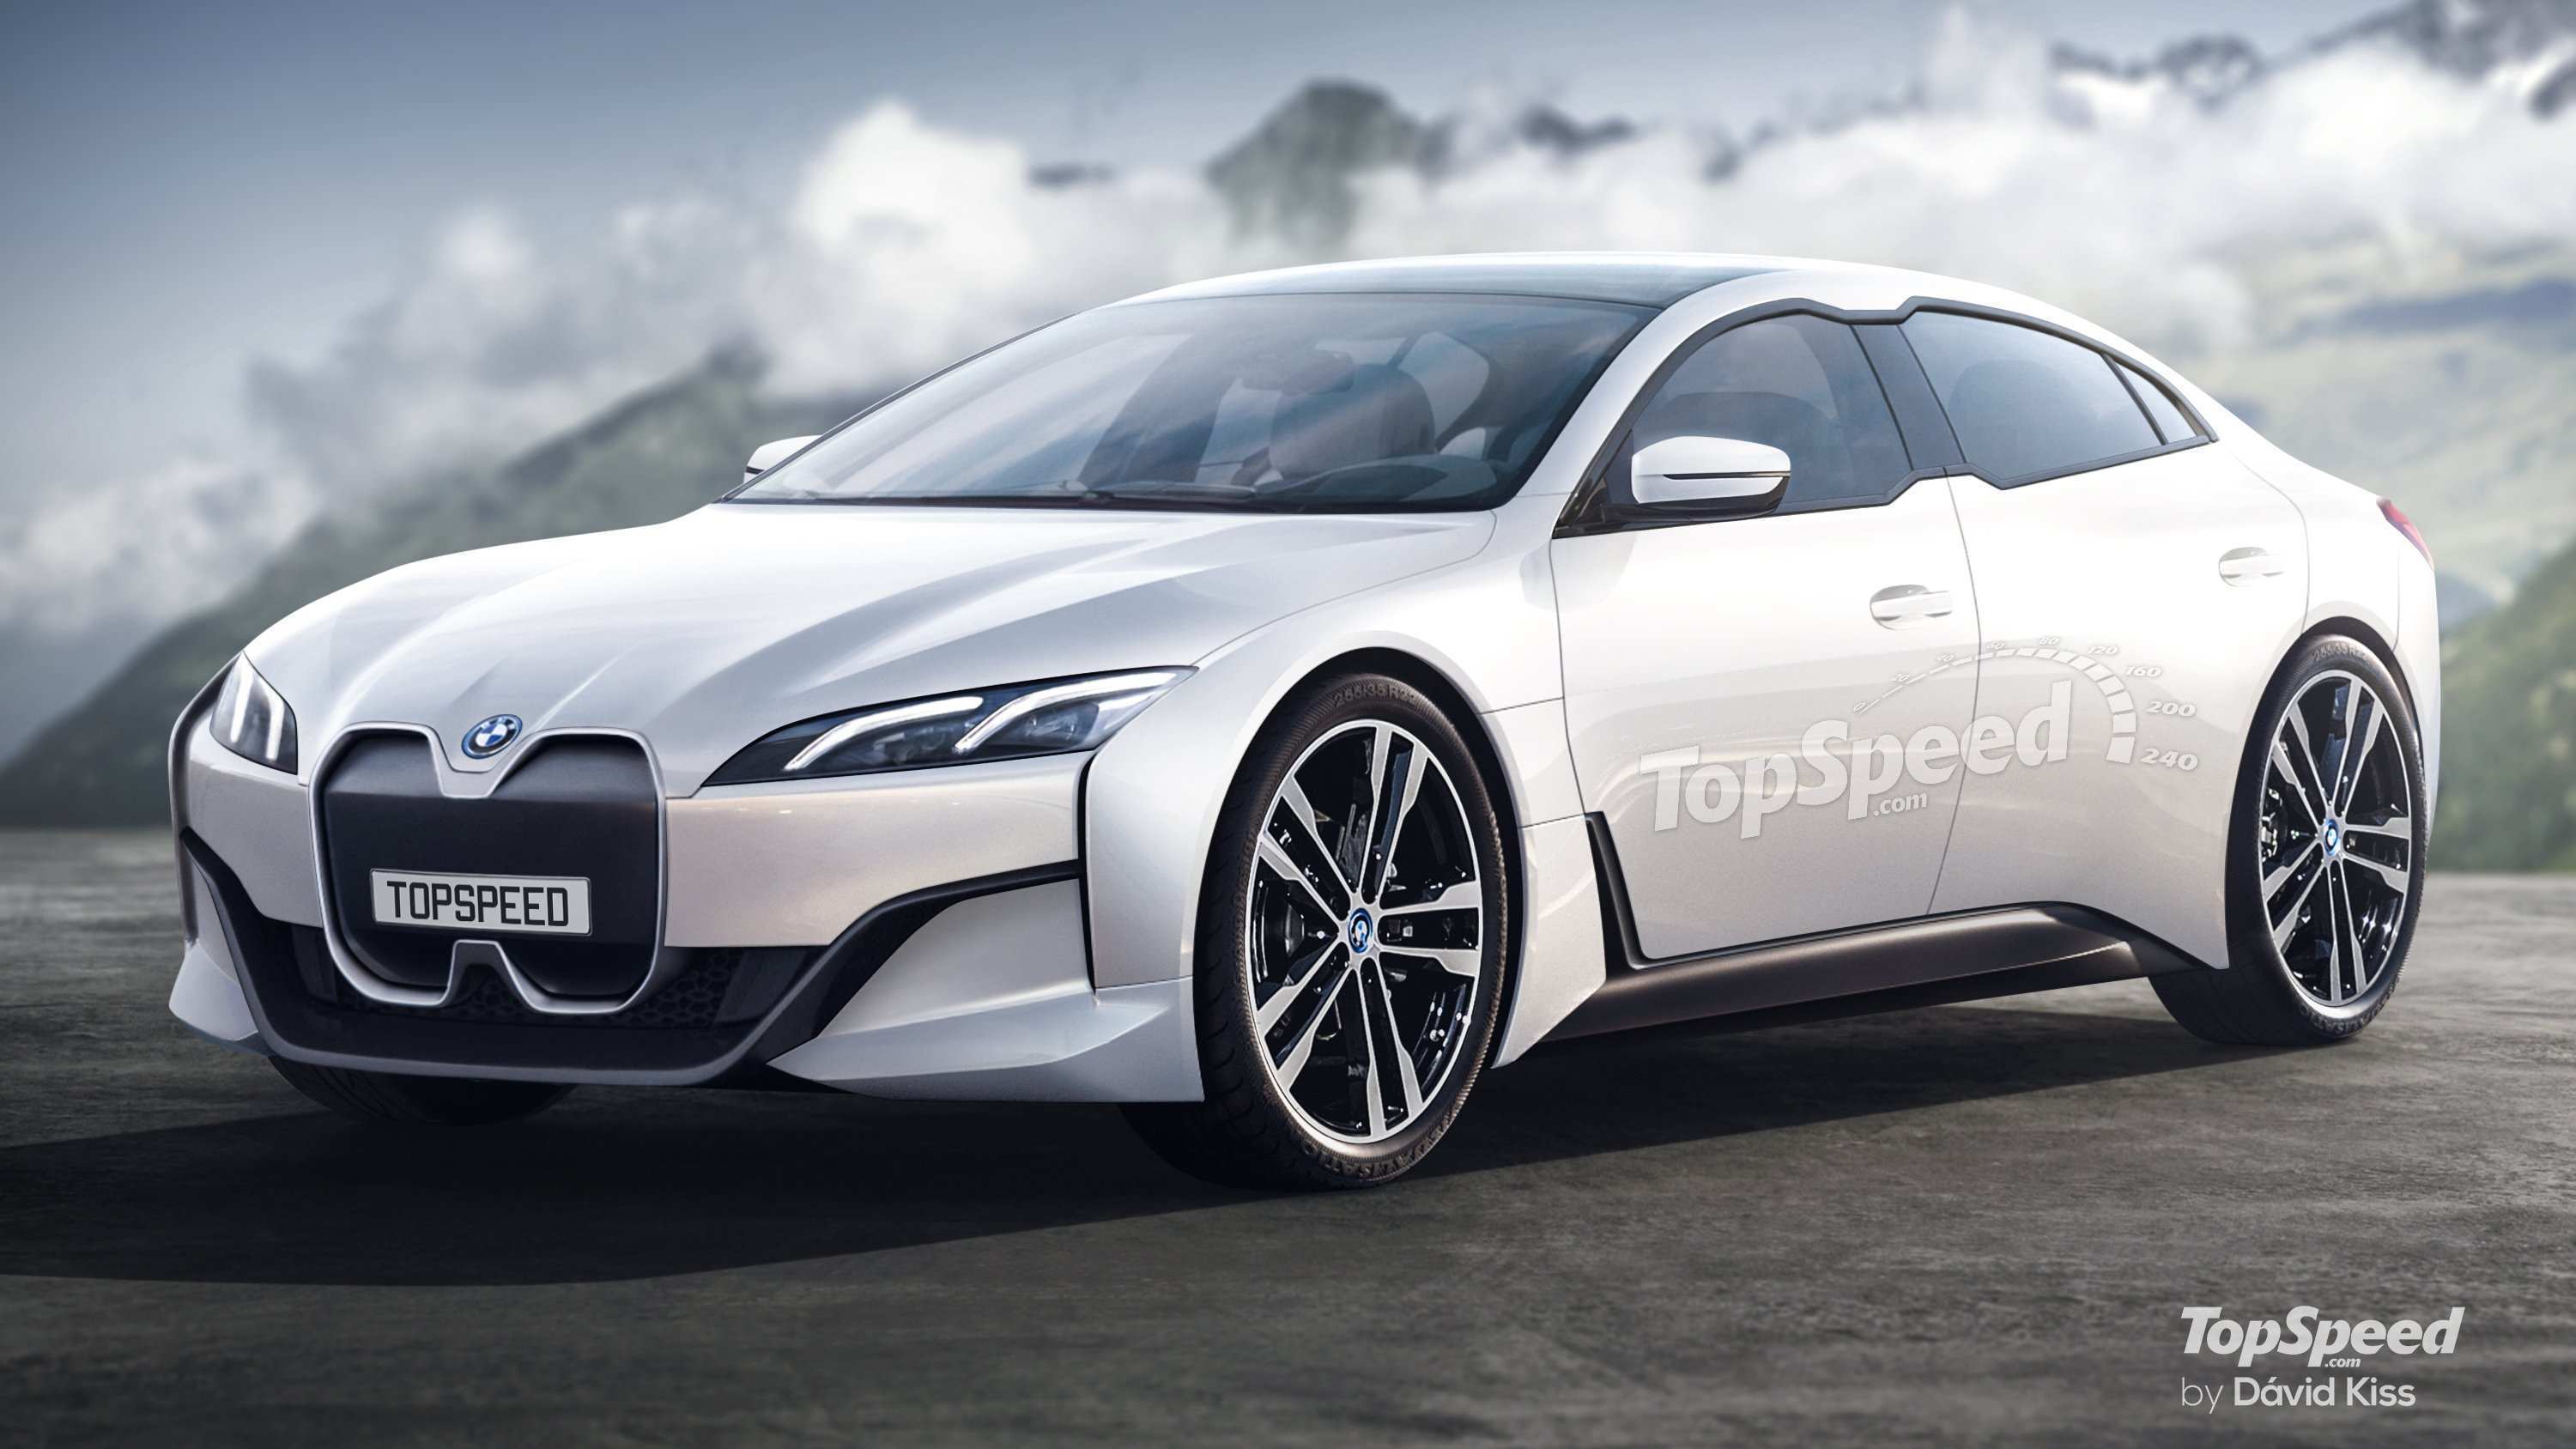 44 All New 2020 Bmw Concept Price for 2020 Bmw Concept